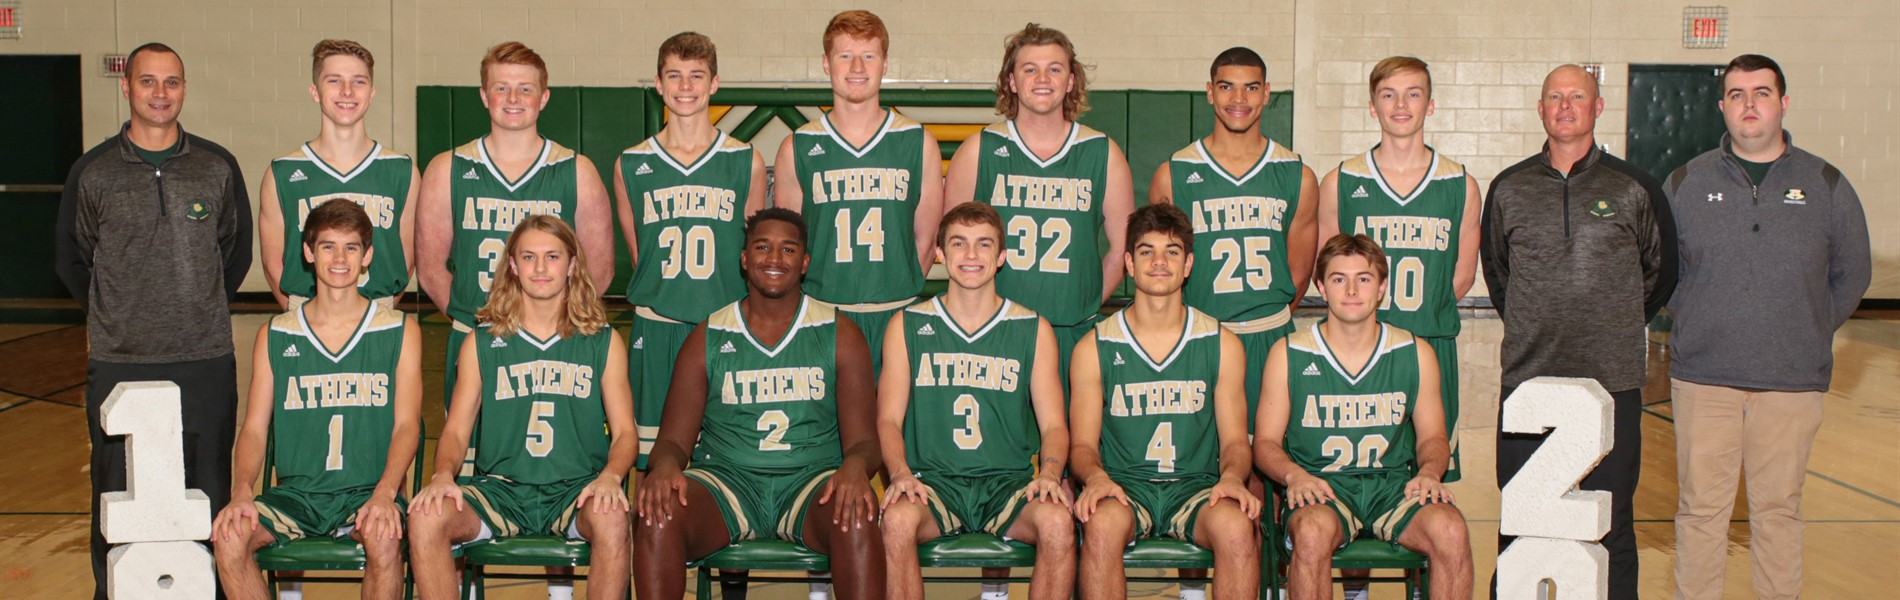 AHS Varsity Basketball Team 2019-2020